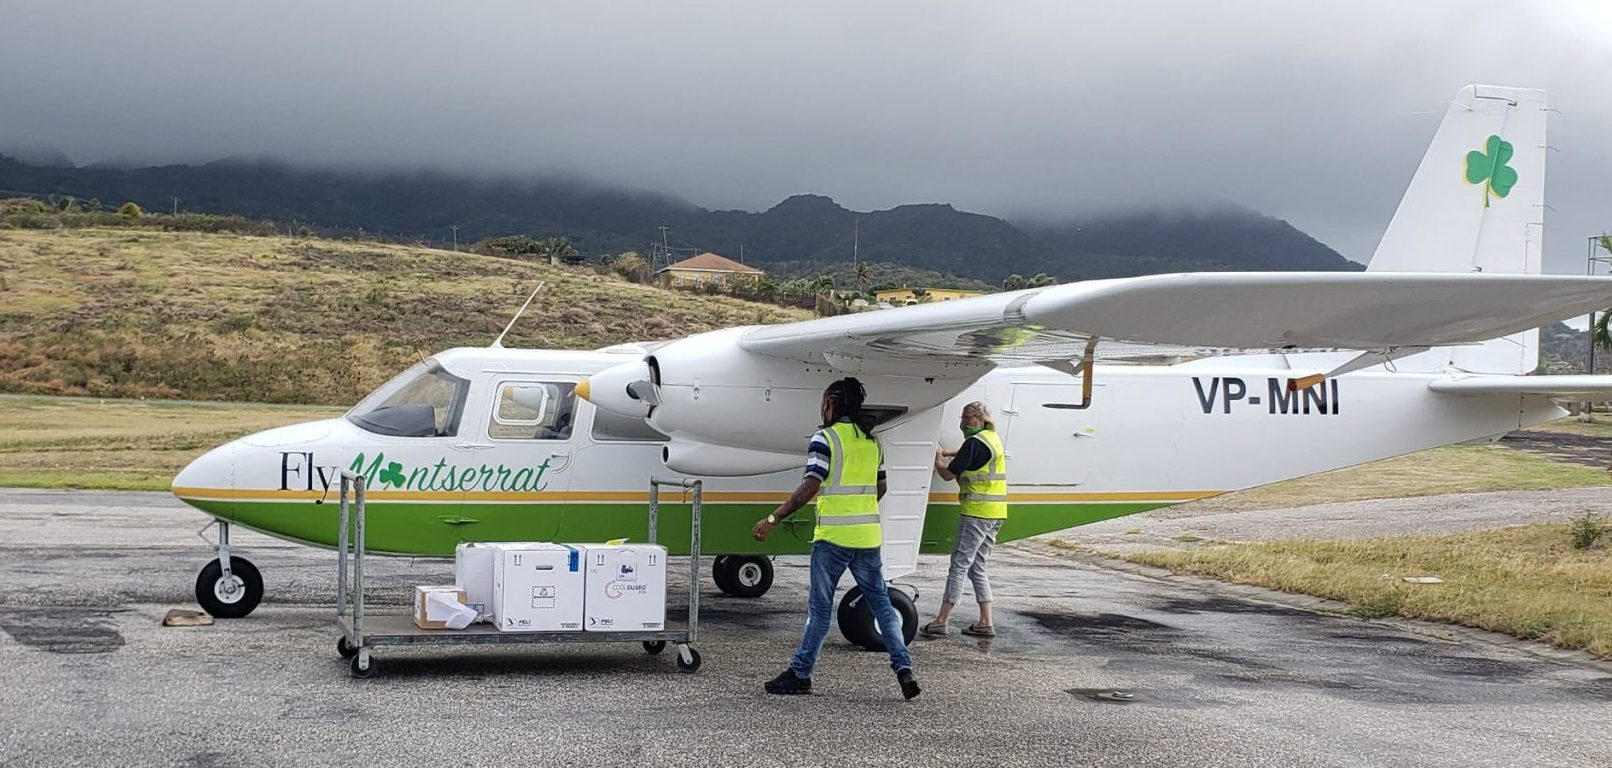 Fly Montserrat on the ground at John A. Osborne Airport